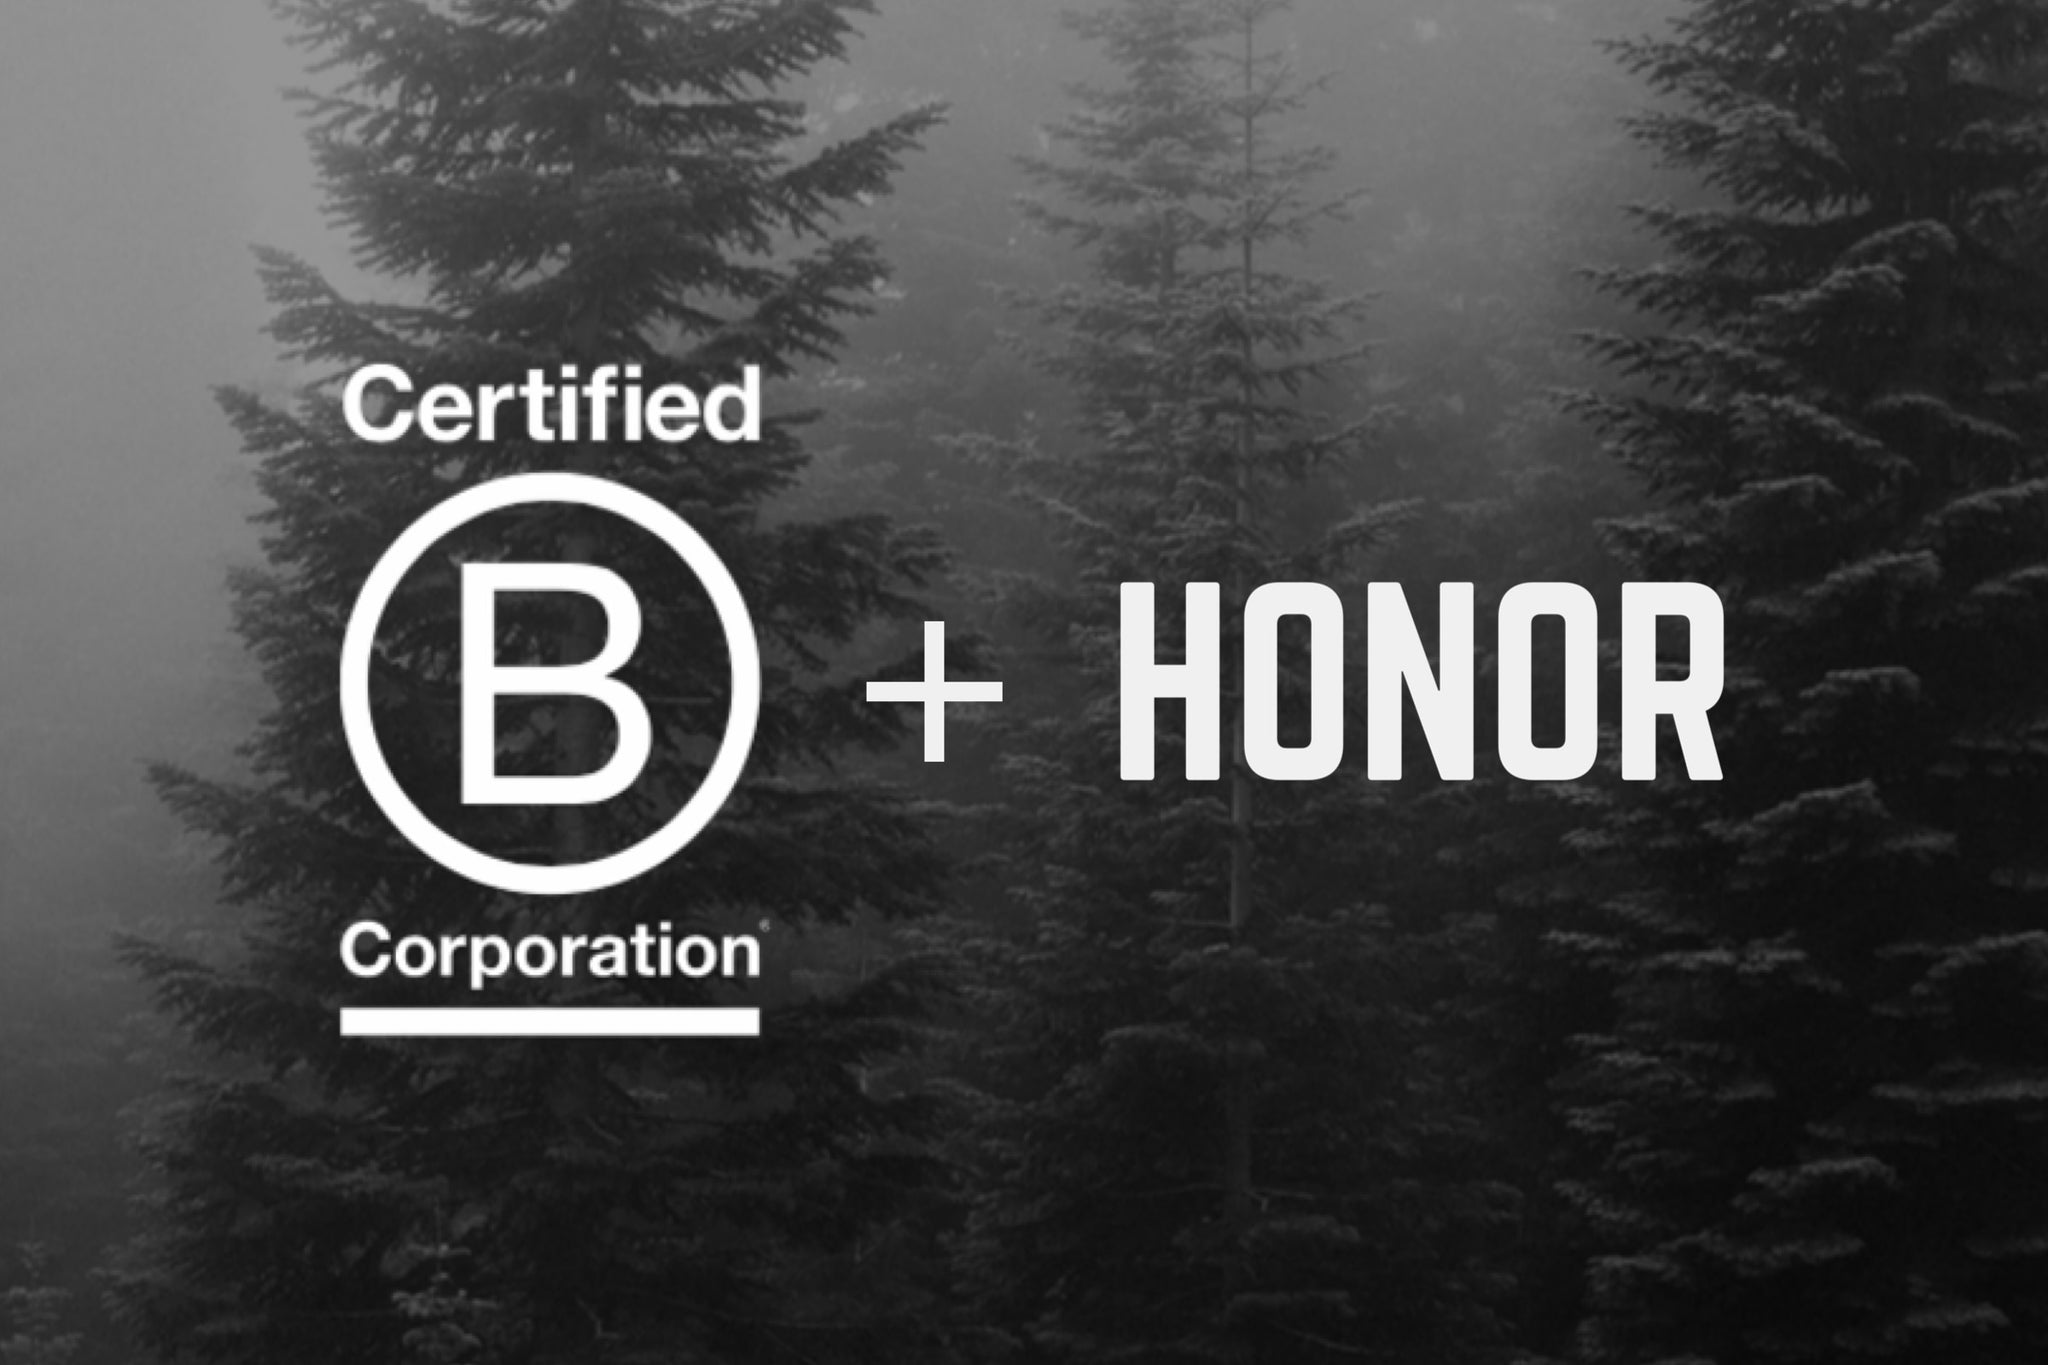 Honor becoming a B Corporation